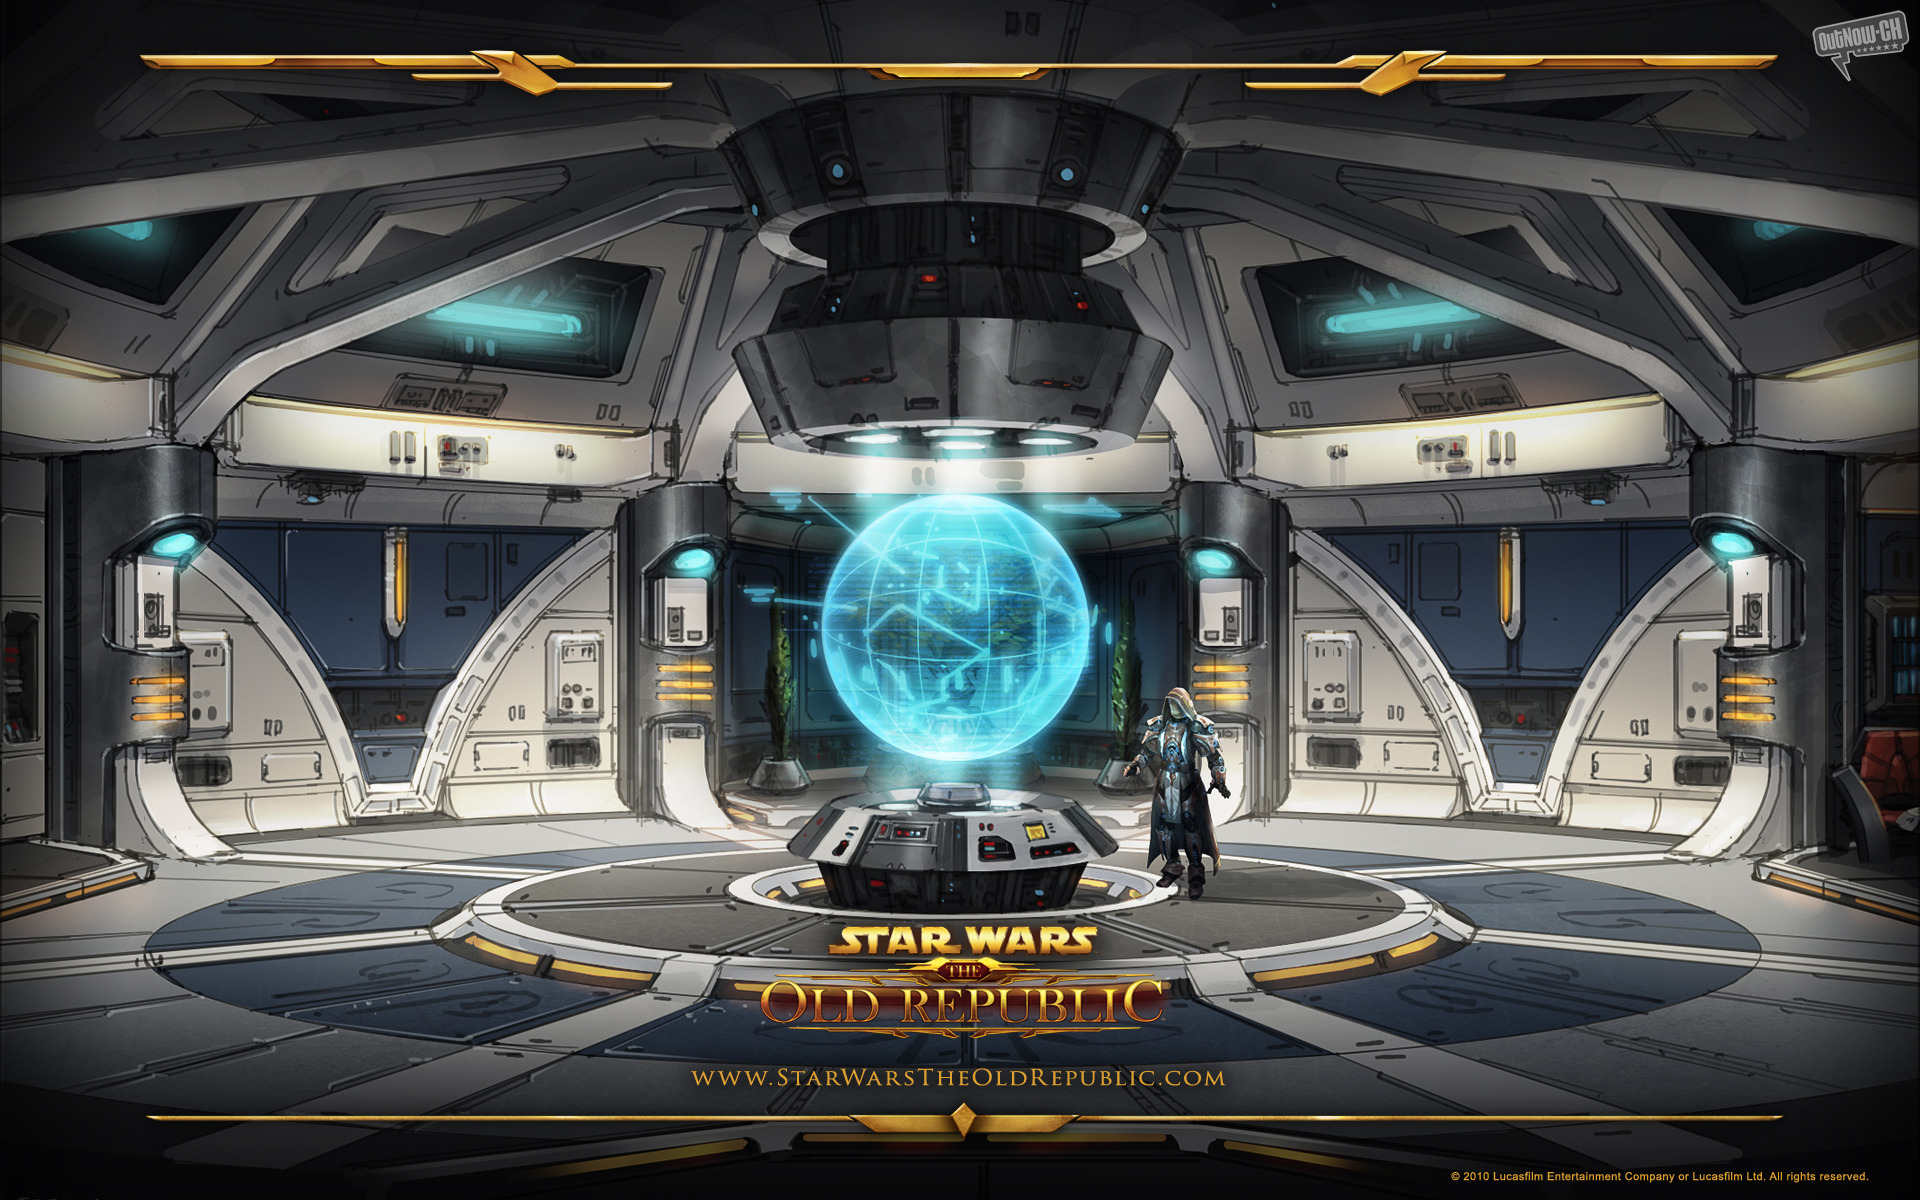 Star Wars The Old Republic Wallpapers Star Wars The